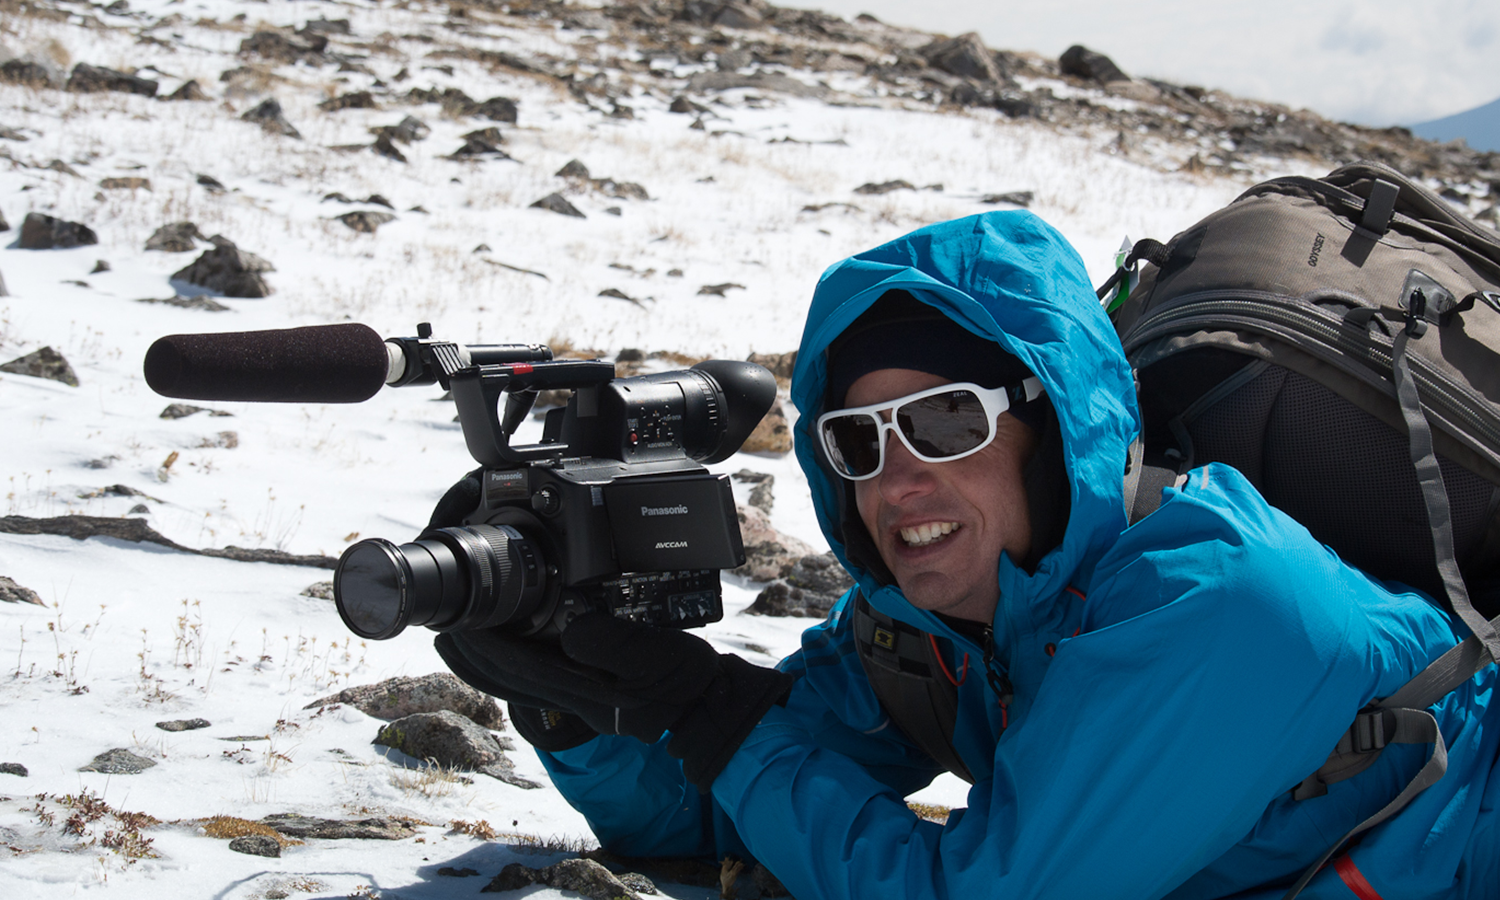 Man in a blue overcoat with hood up, laying on snow, holding a video camera.